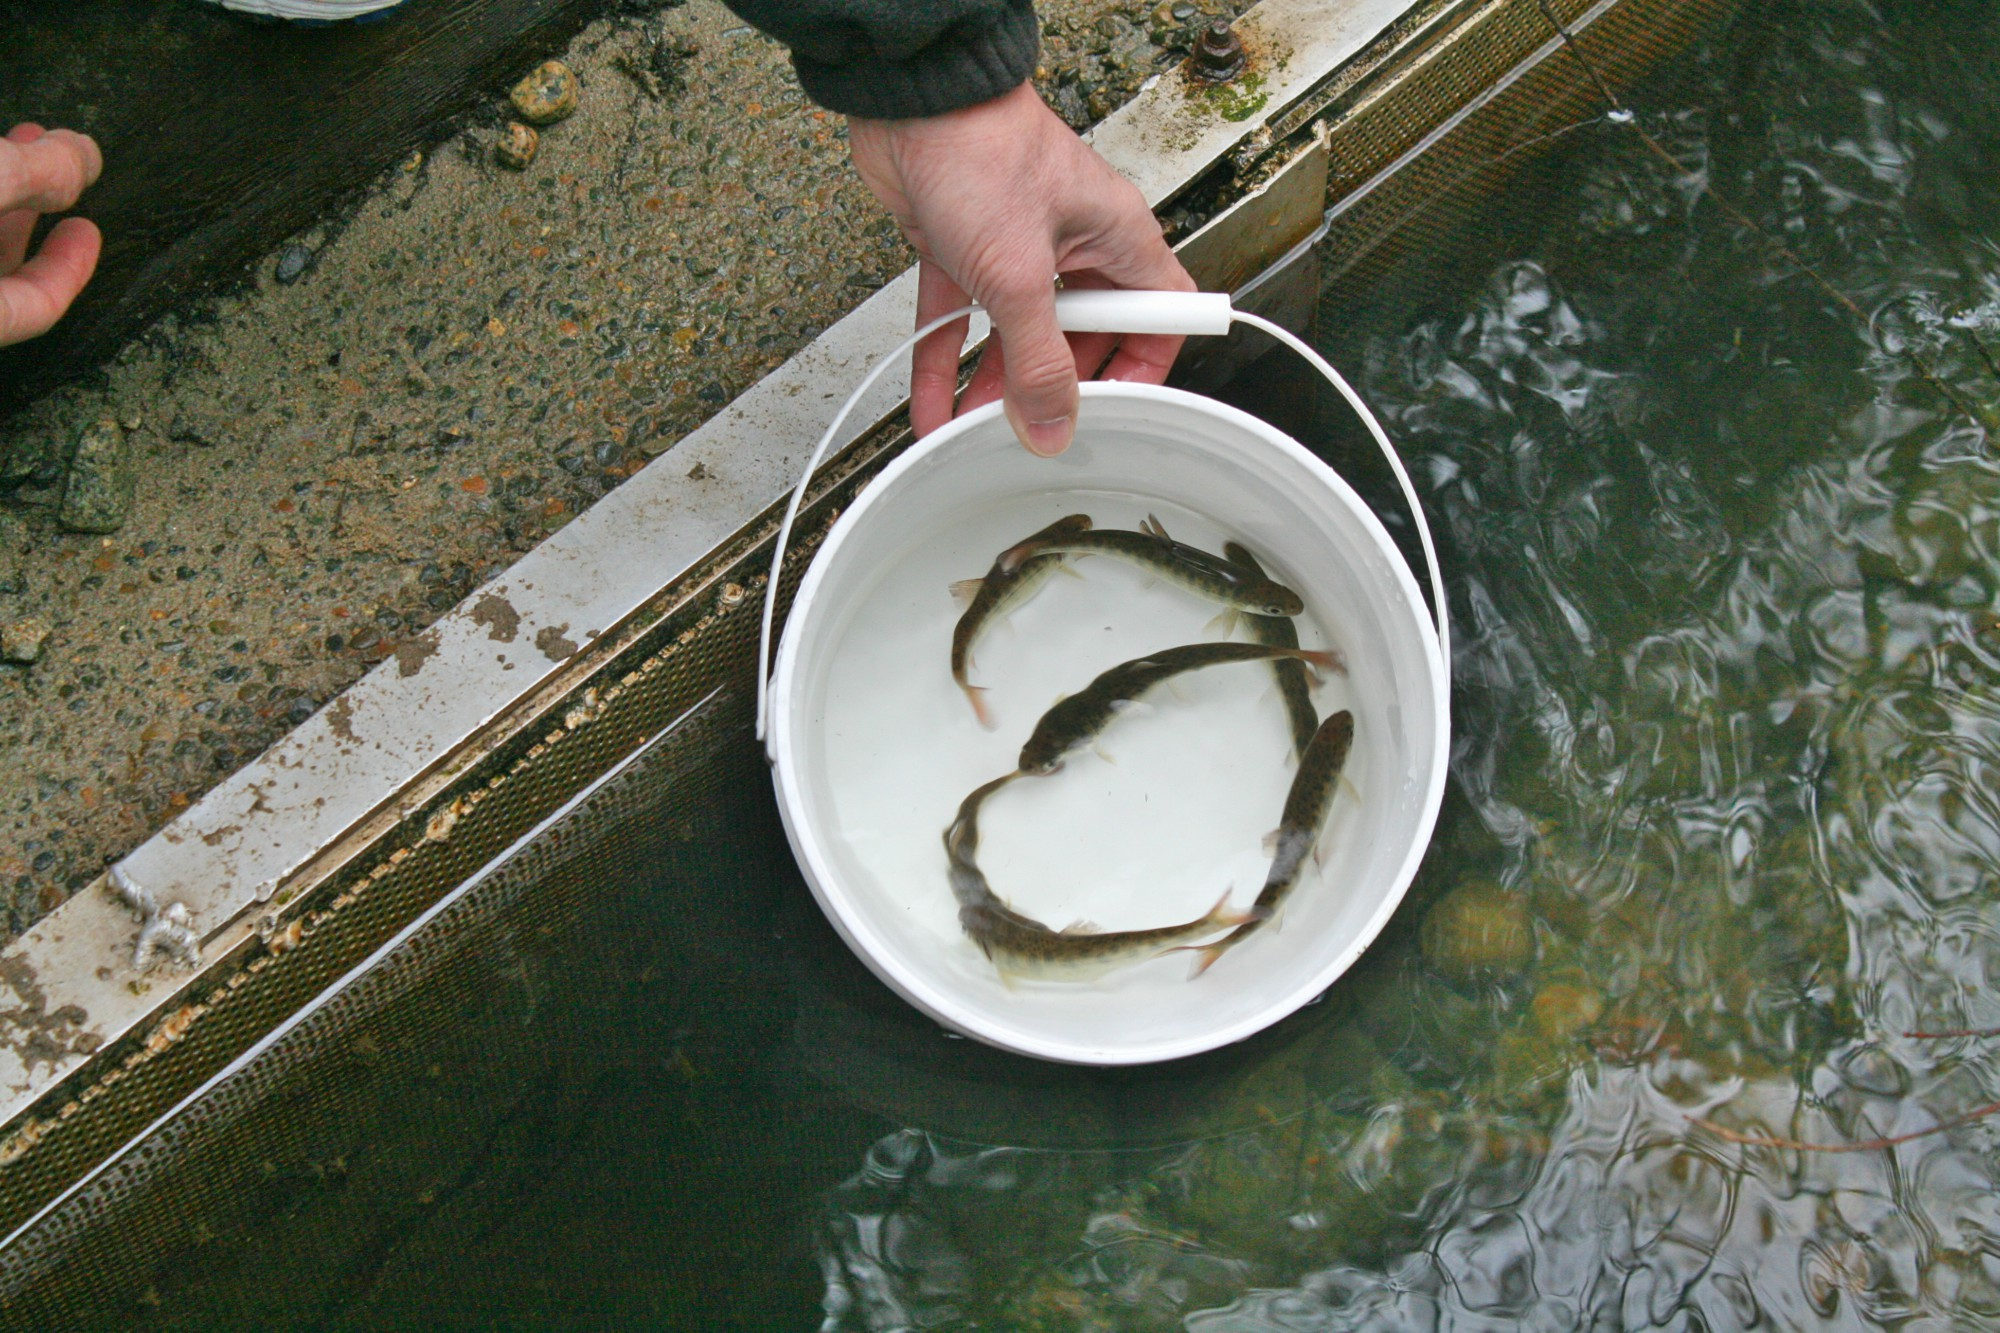 Join the Hoy-Scott Watershed Society on Sunday, May 1stfrom 11am to 2pm at Hoy Creek Hatchery in Coquiatlam as thousands of coho smolts will be released into Hoy Creek to make their way down to the Pacific Ocean.    (HSWS Photo)